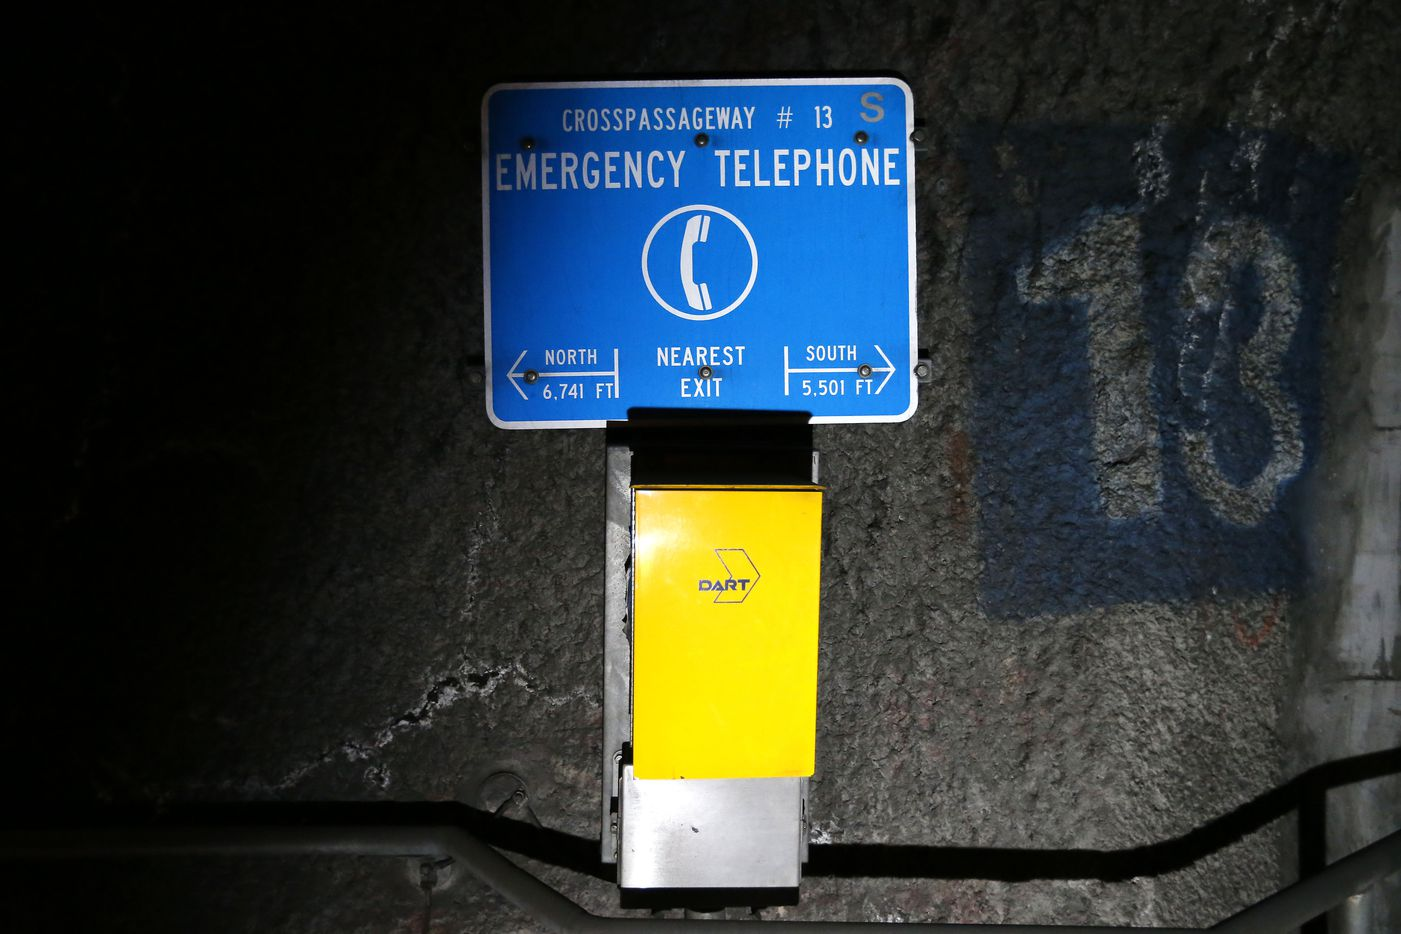 An emergency phone and directions to the nearest exit, seen inside DART's underground tunnel system in Dallas, Friday, July 20, 2018.